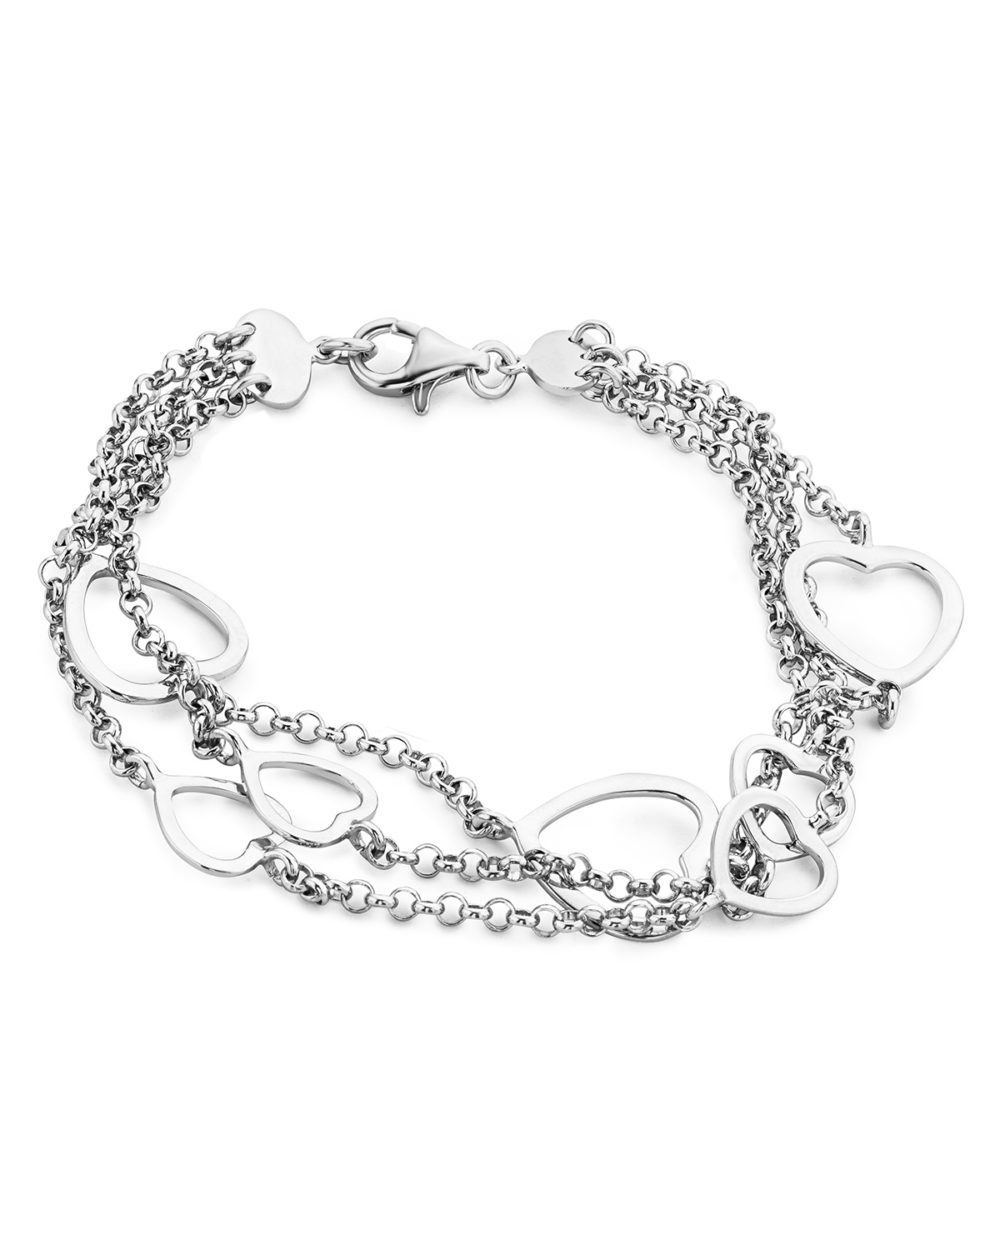 Anna Malou, Armband 'Herz' aus 925 Sterling Silber